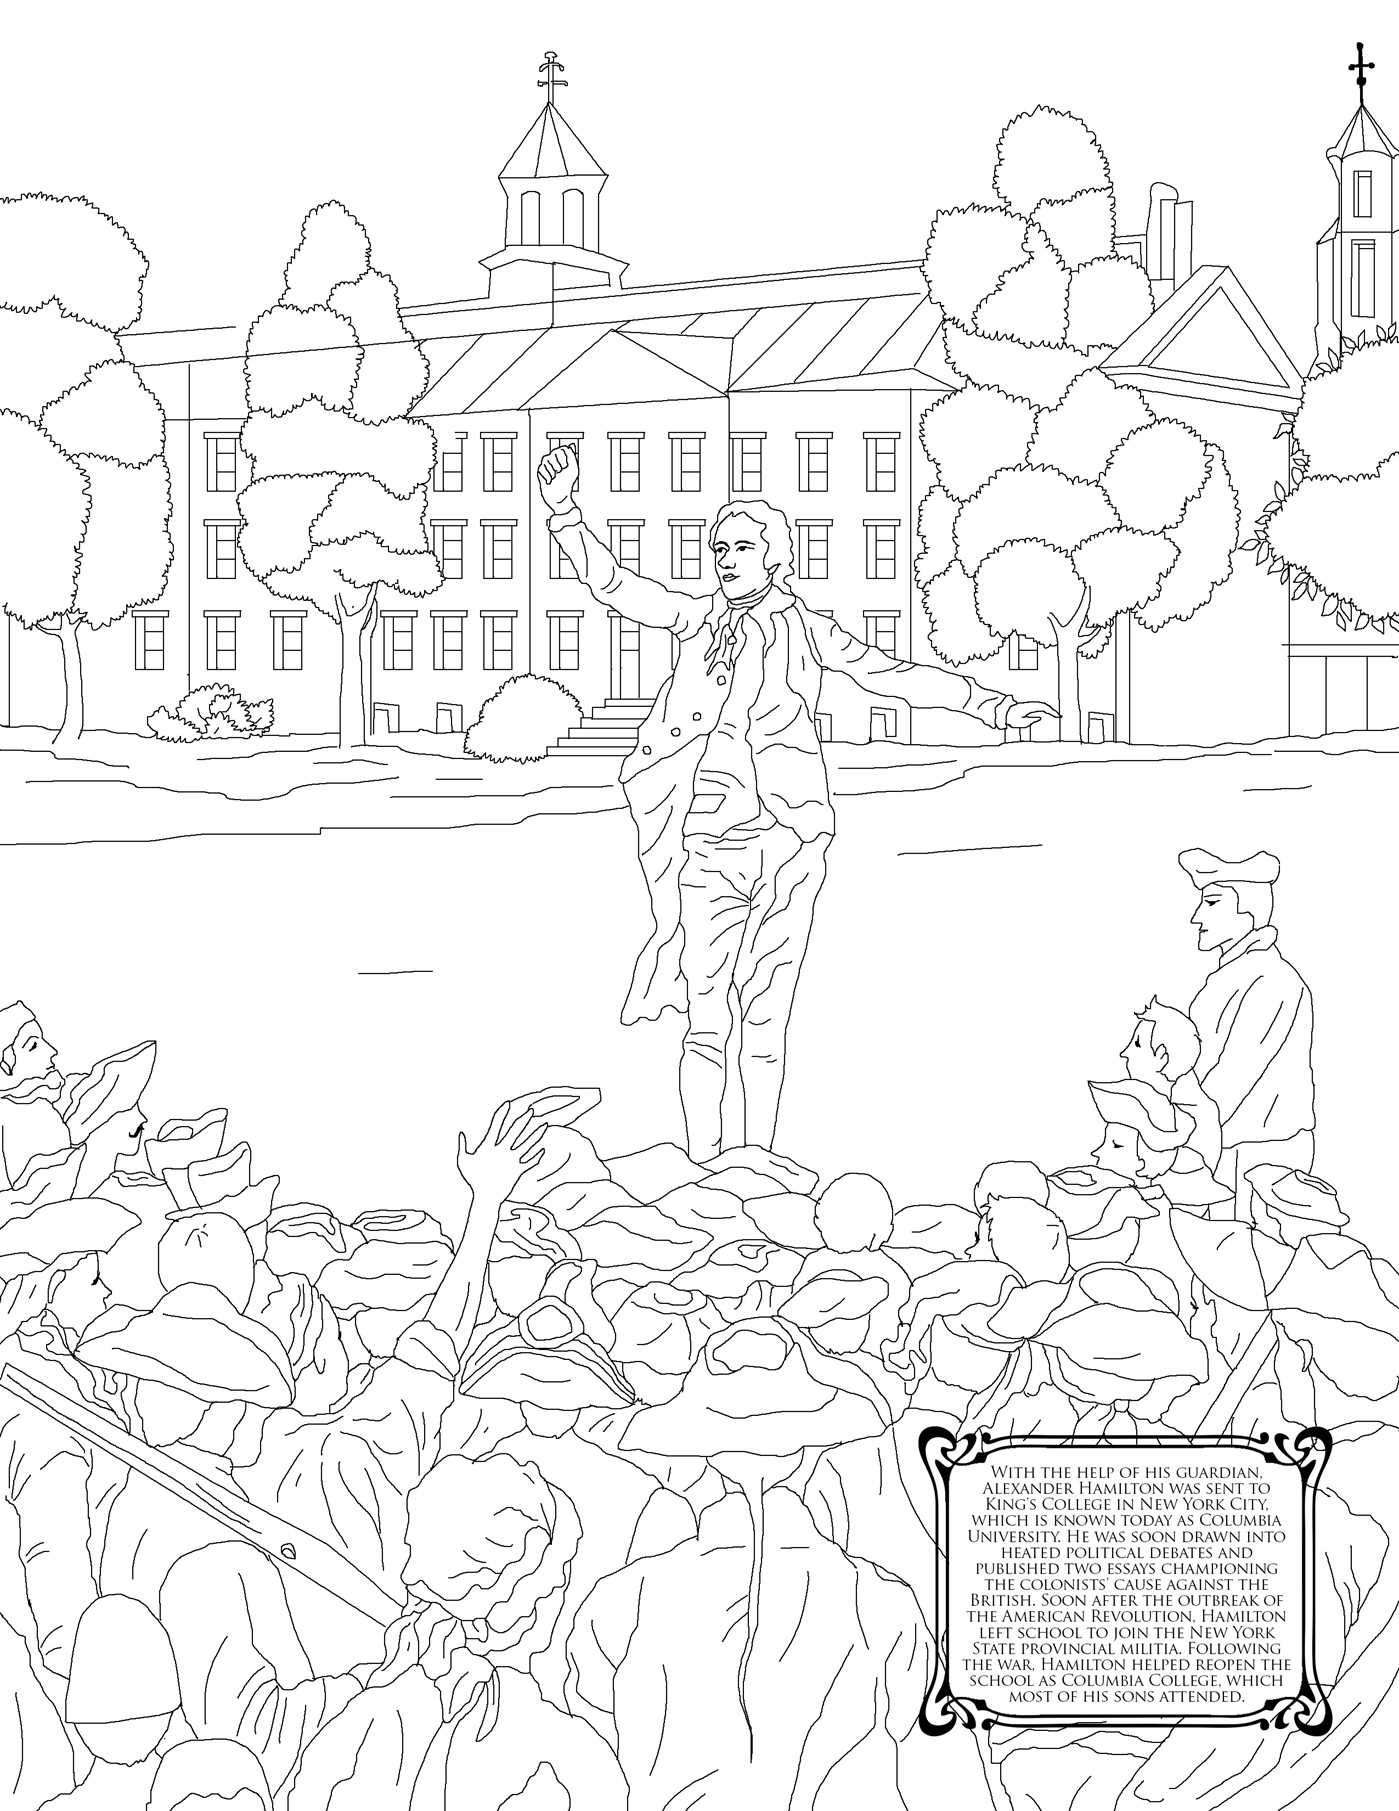 Publishers for adult coloring books - The Adult Coloring Book